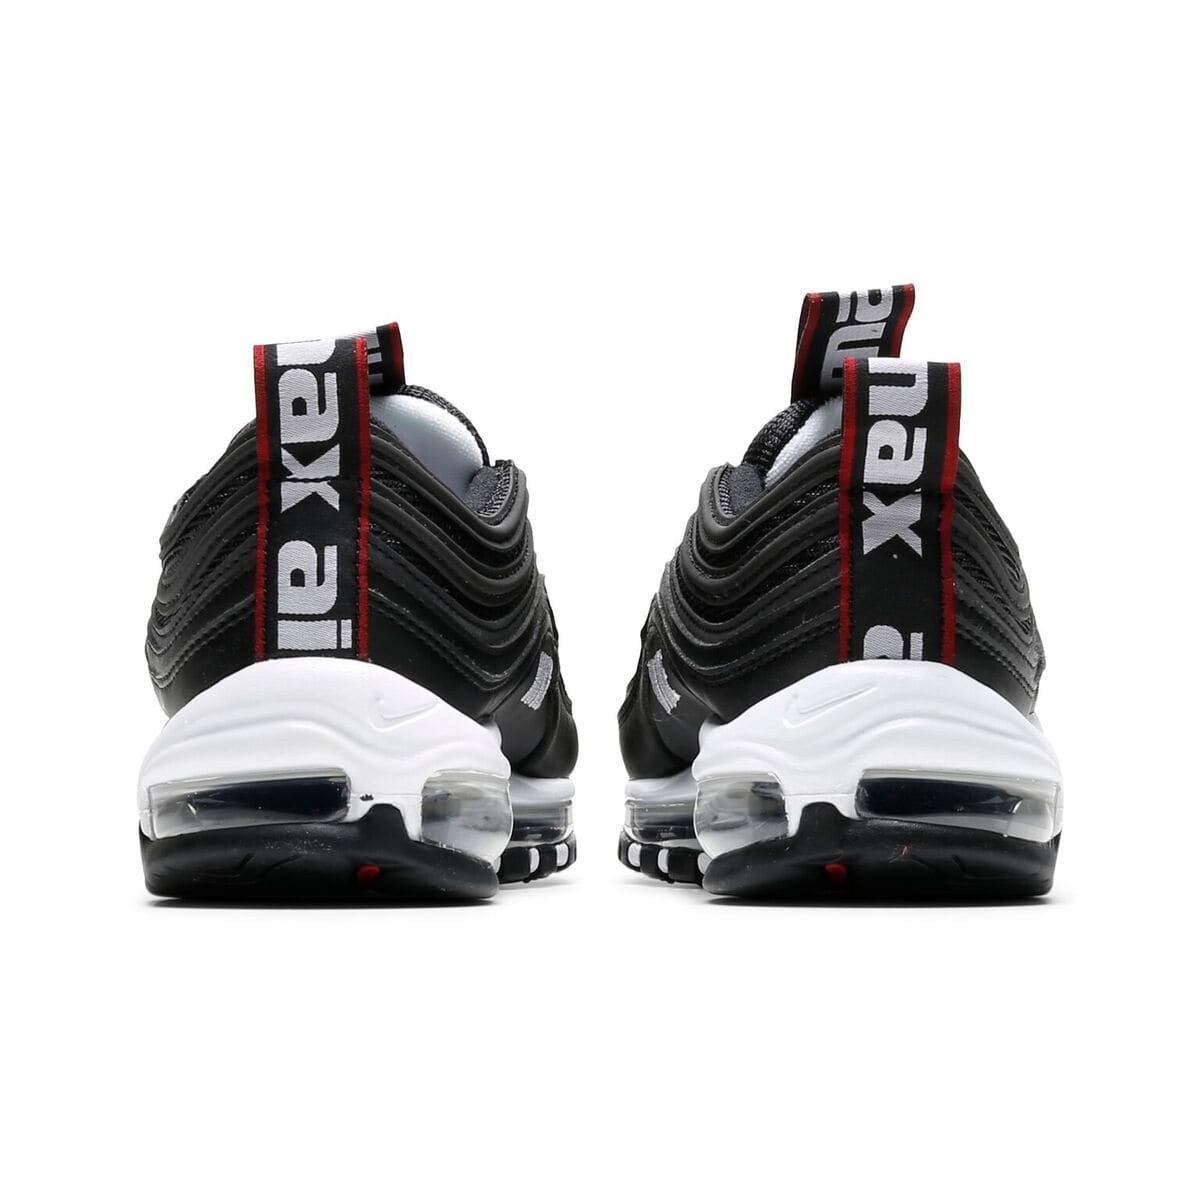 Nike Air Max 97 312834 004 Size 11: Amazon.in: Shoes